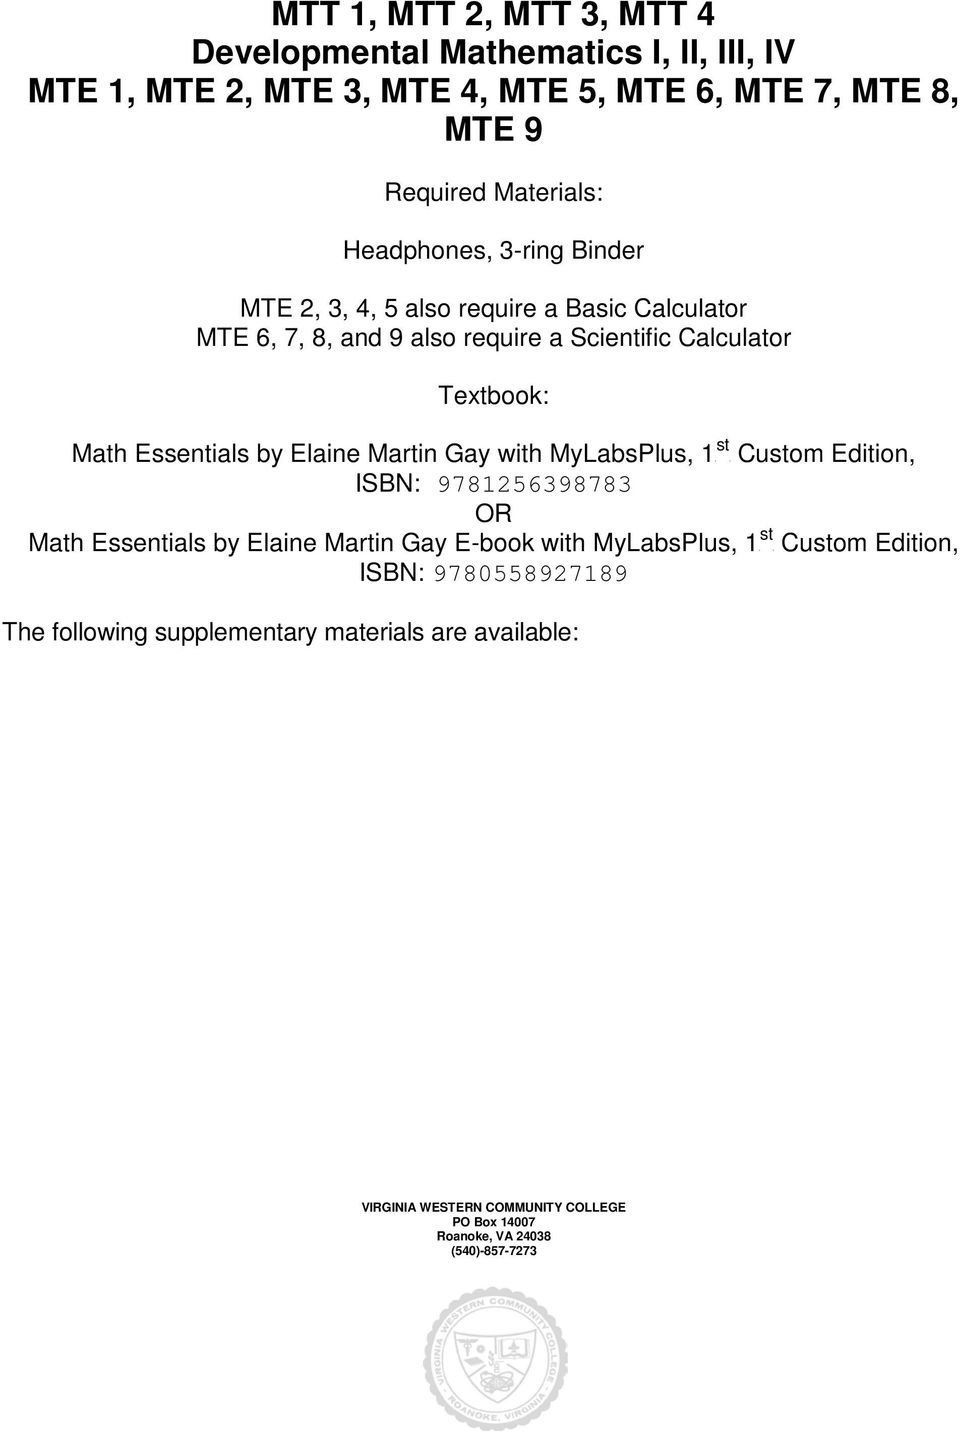 Scientific Calculator Textbook: Math Essentials by Elaine Martin Gay with MyLabsPlus, 1P Edition, ISBN: 9781256398783 OR st Math